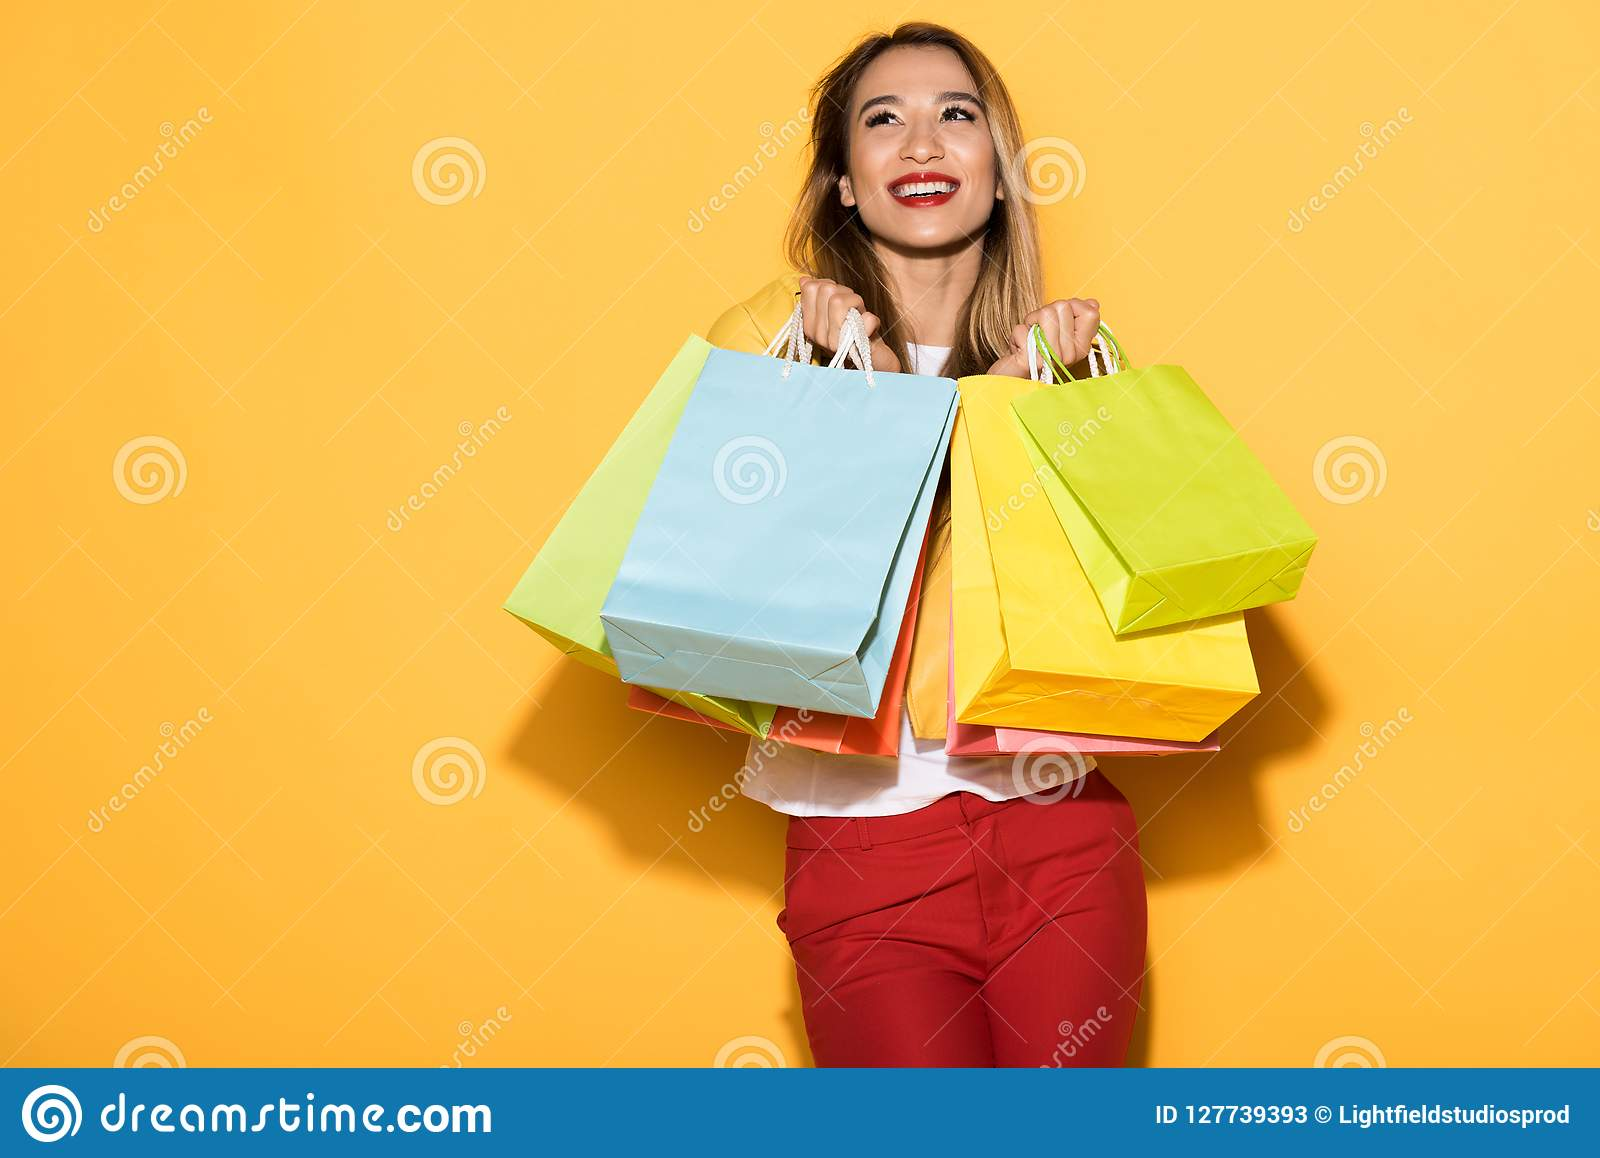 happy female shopper standing with paper bags on yellow